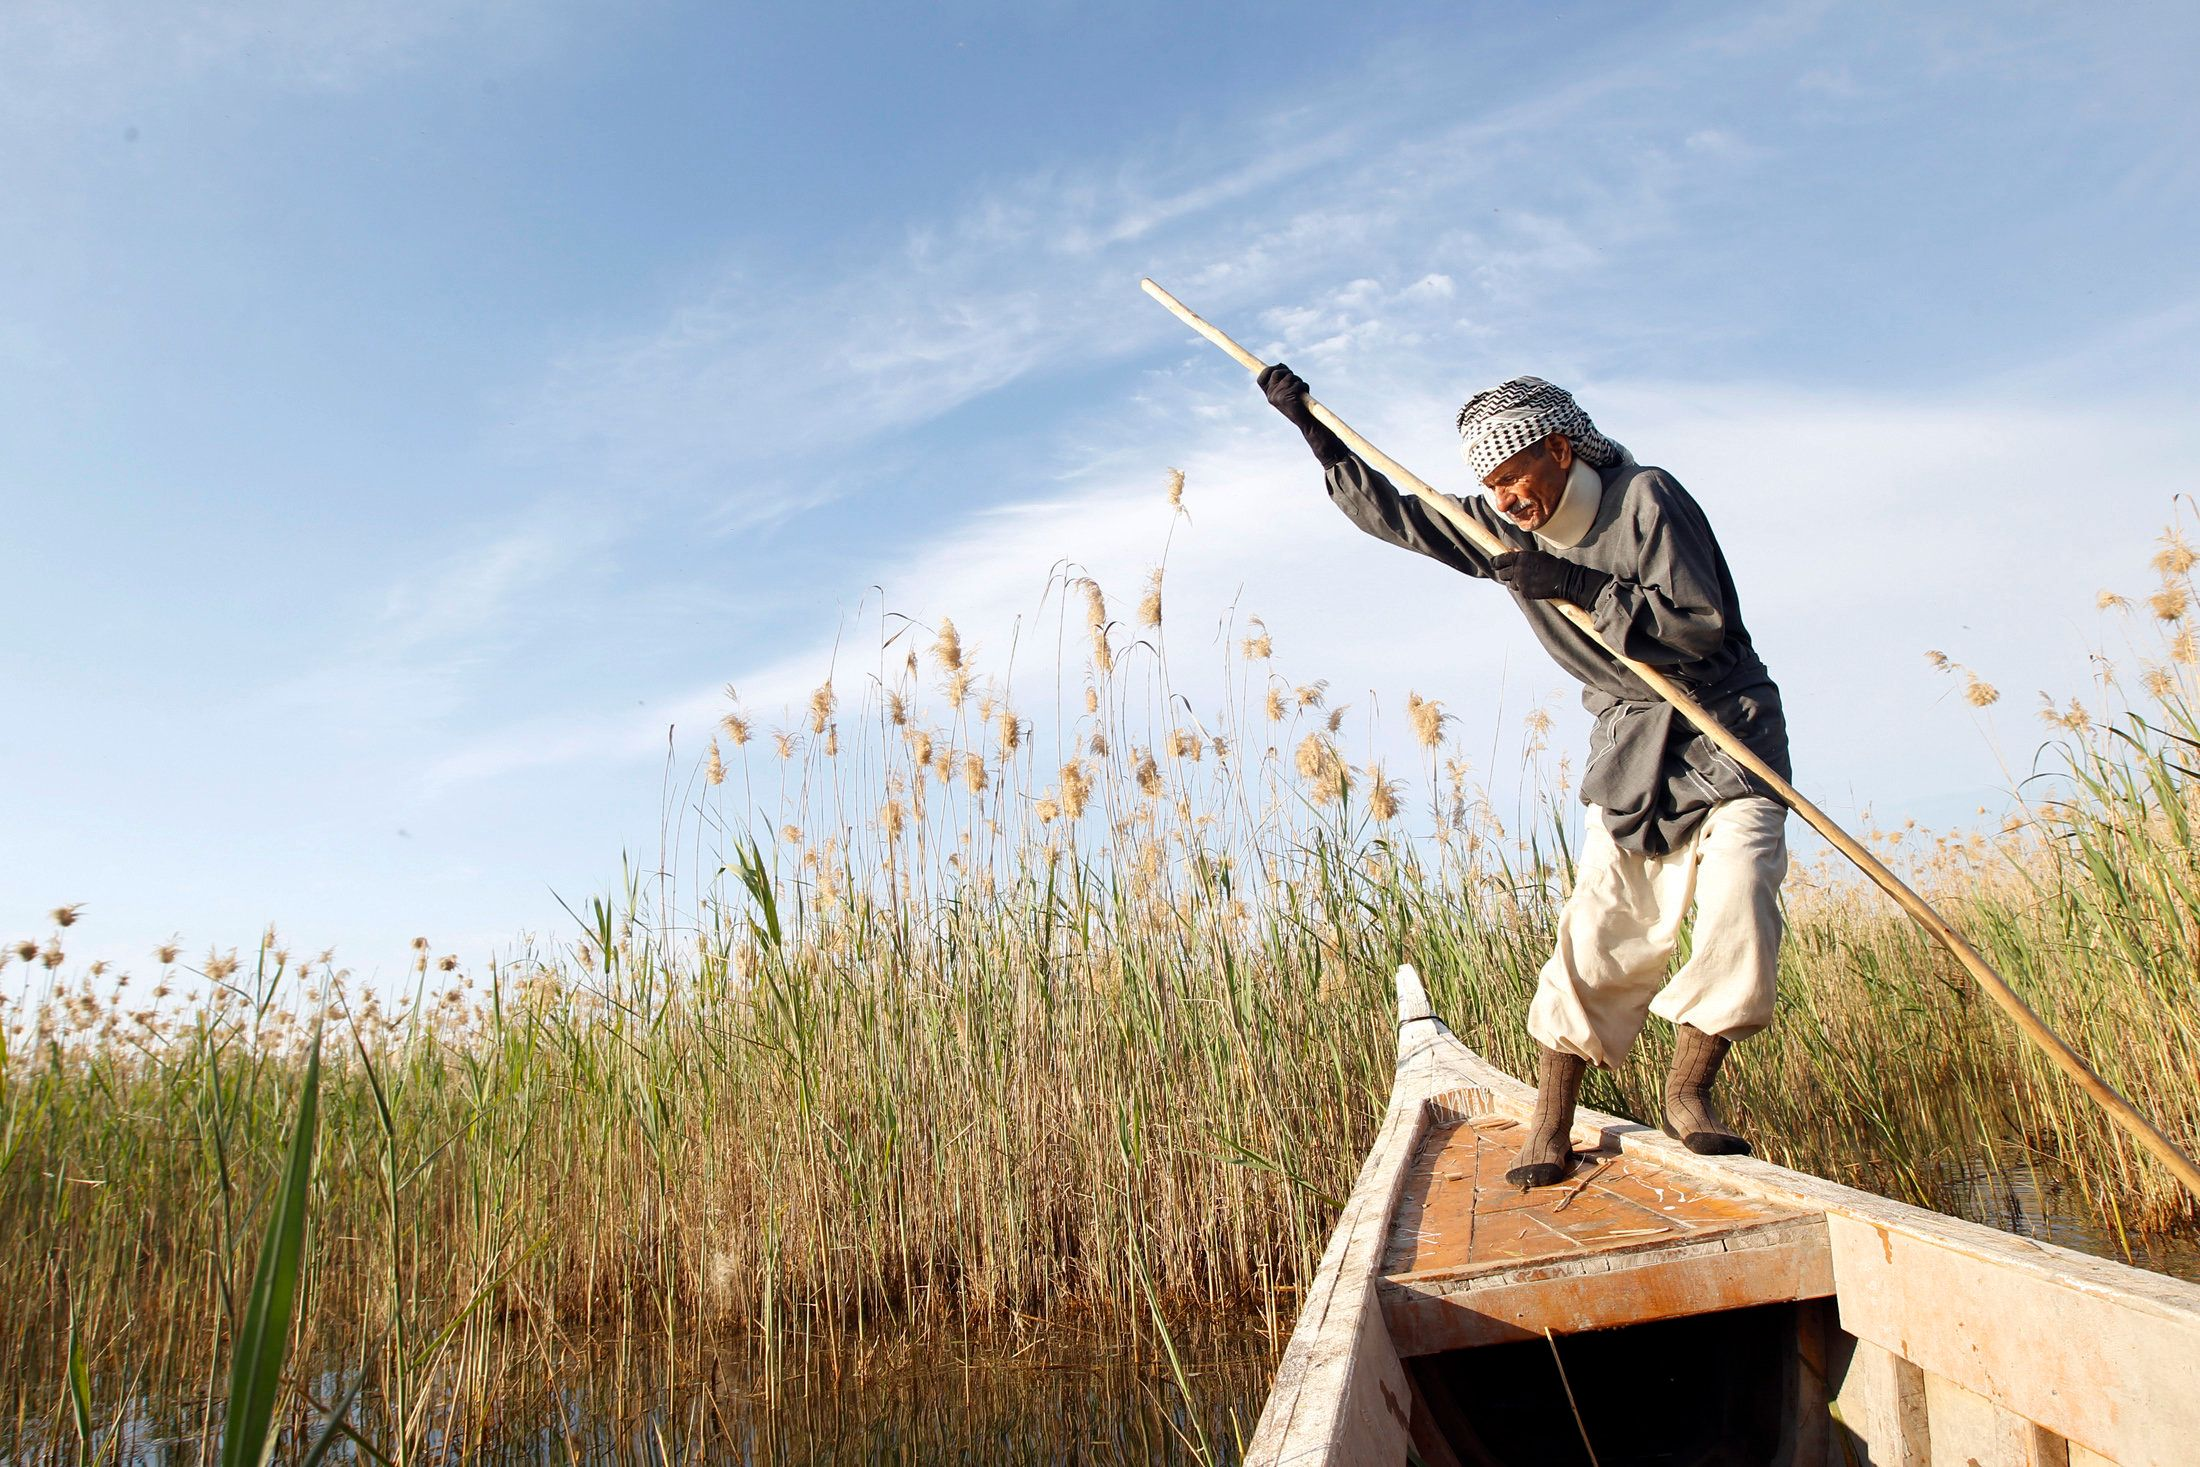 Marsh Arab Abu Sabah paddles his boat at the Chebayesh marsh in Nassiriya, 300 km (185 miles) southeast of Baghdad on Februar